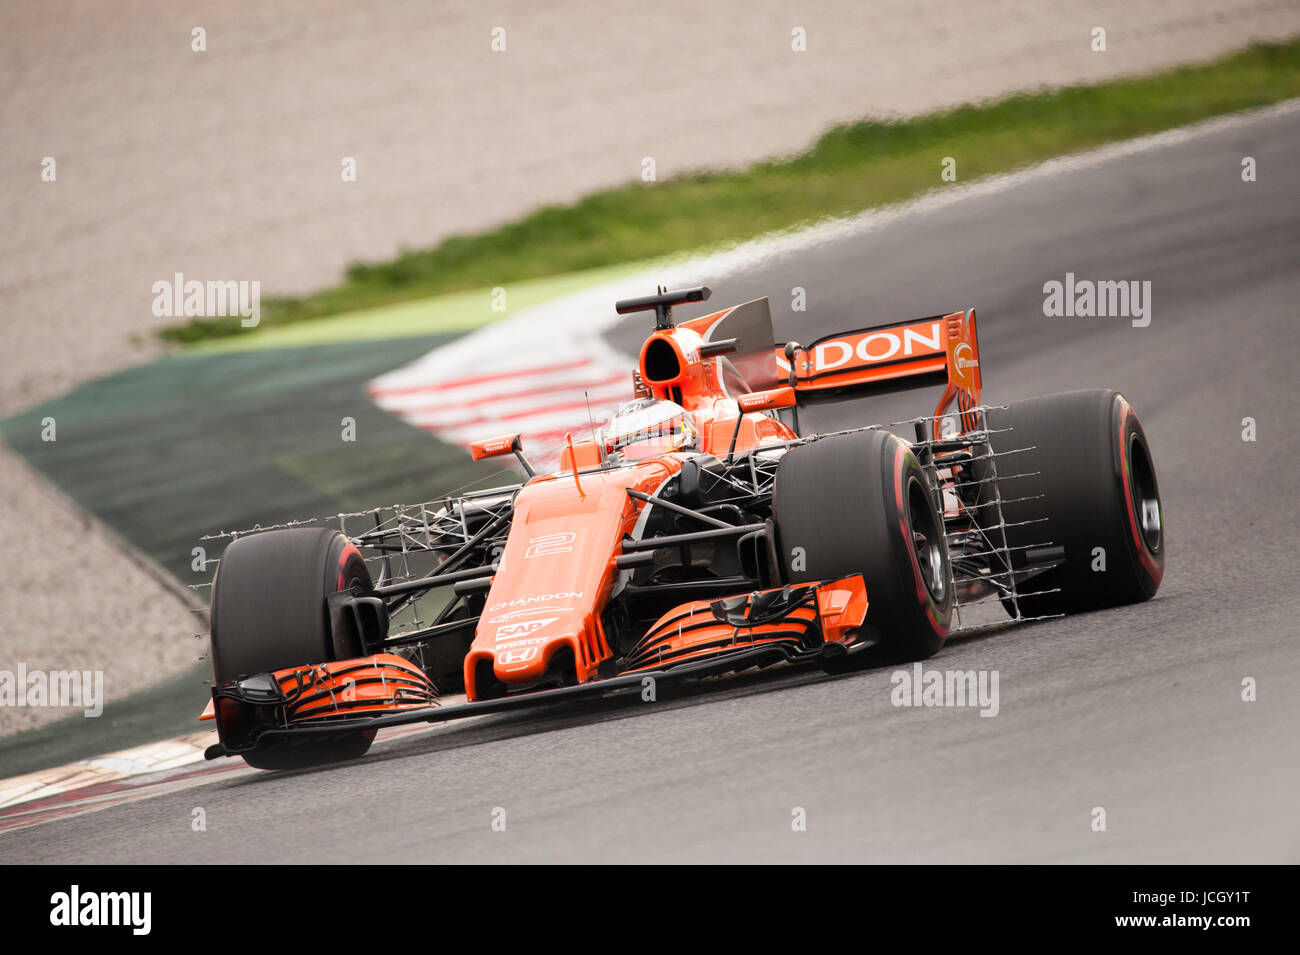 Stoffel Vandoorne, driver of the Mclaren Team in action during the 2nd day of the Formula 1 Test at the Circuit - Stock Image